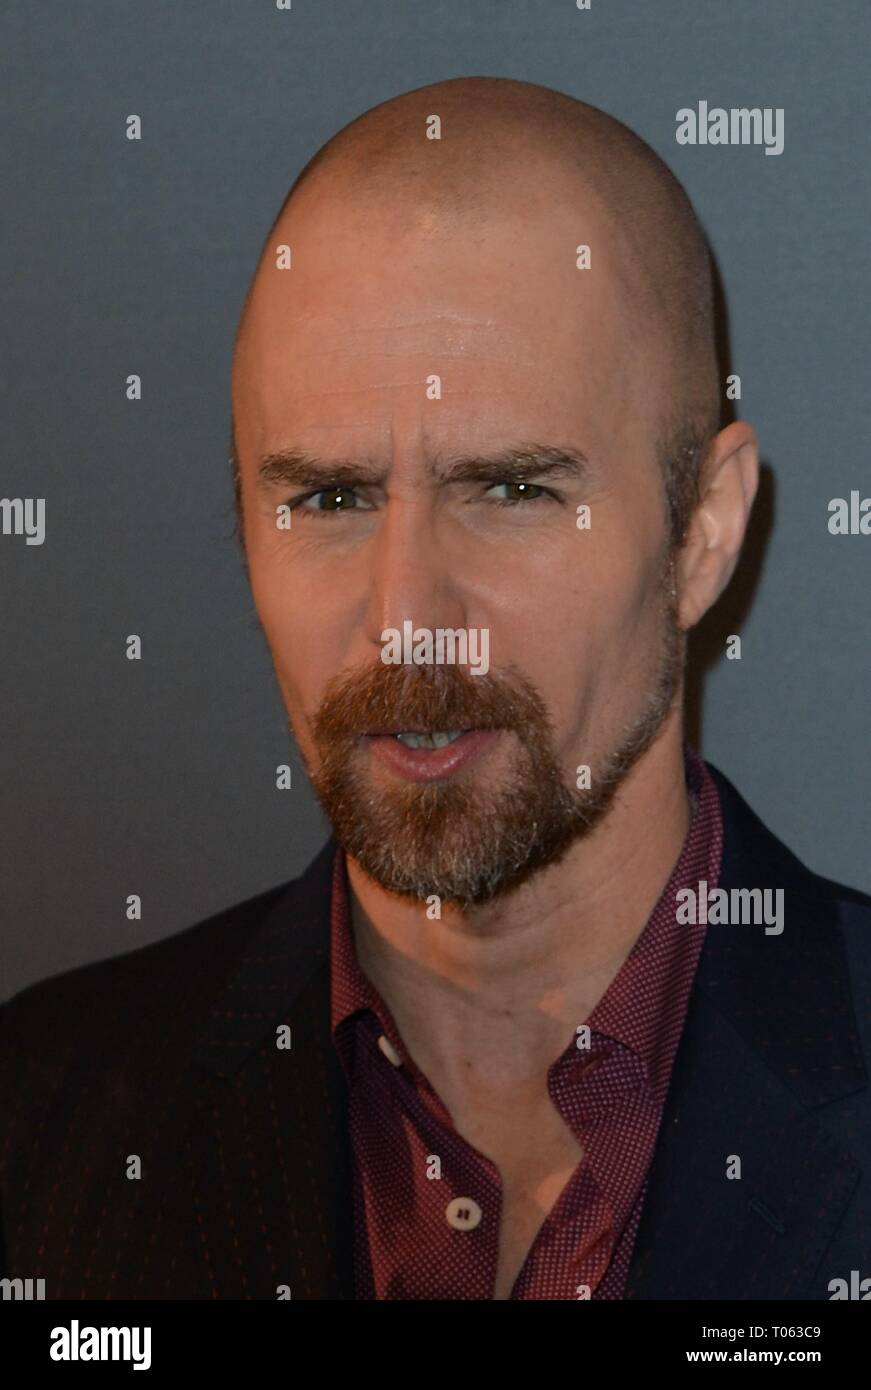 New York, USA. 17th Mar, 2019. Sam Rockwell at arrivals for THE BEST OF ENEMIES Photo Call, The Whitby Hotel Theater, New York, NY March 17, 2019. Credit: Kristin Callahan/Everett Collection/Alamy Live News - Stock Image